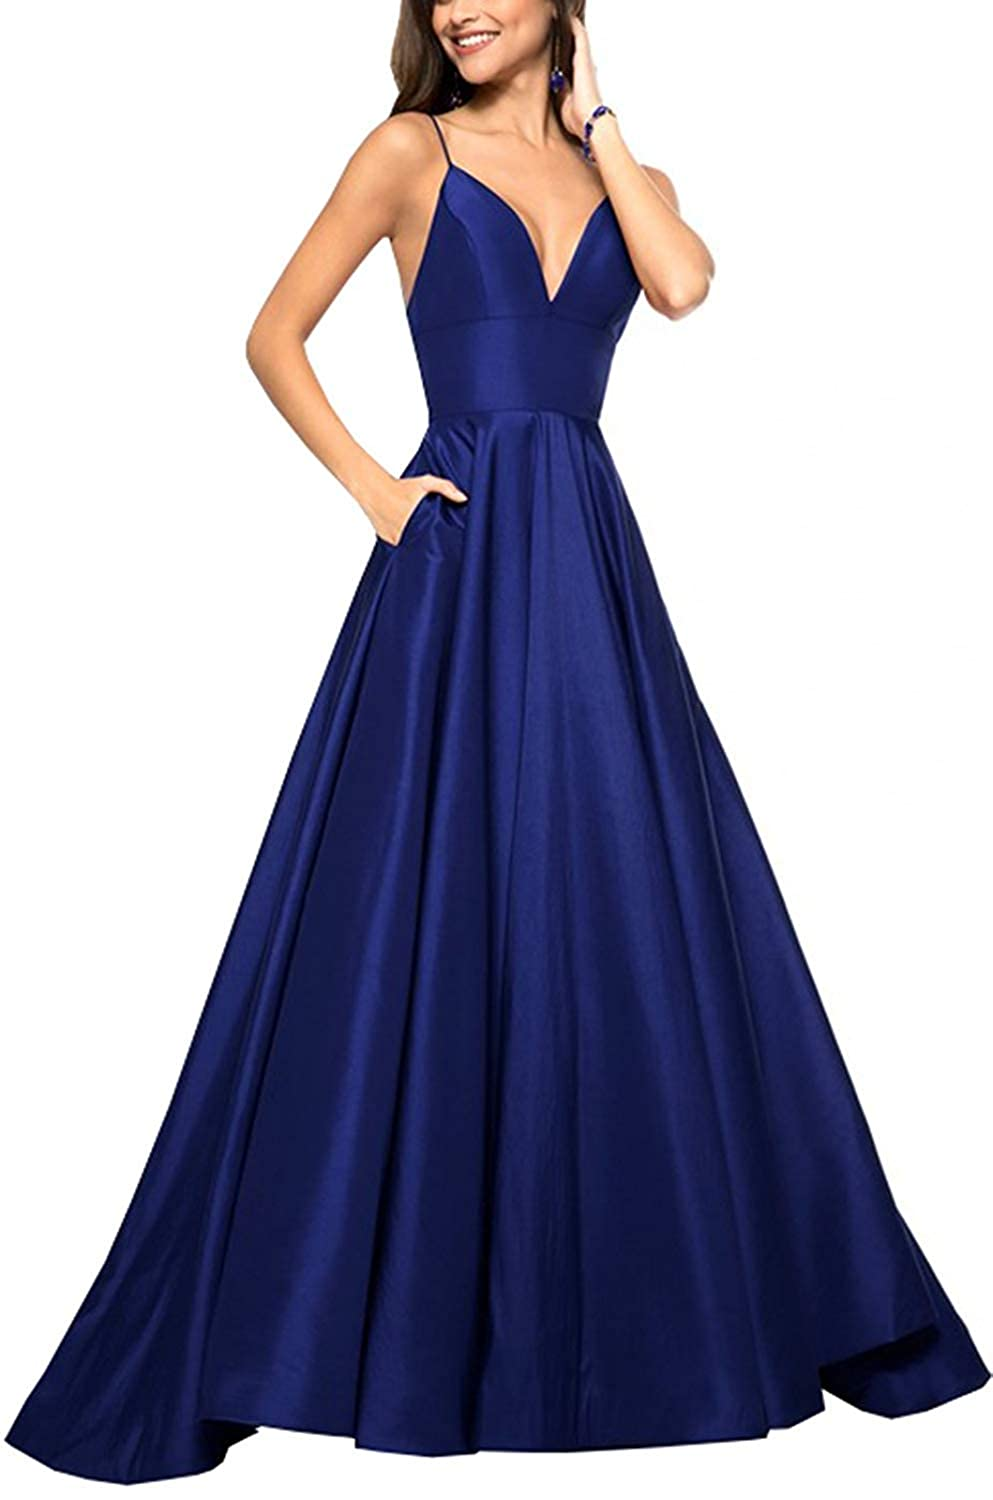 Royal bluee QiJunGe V Neck Evening Party Gown A Line Spaghetti Strap Prom Dress with Pocket